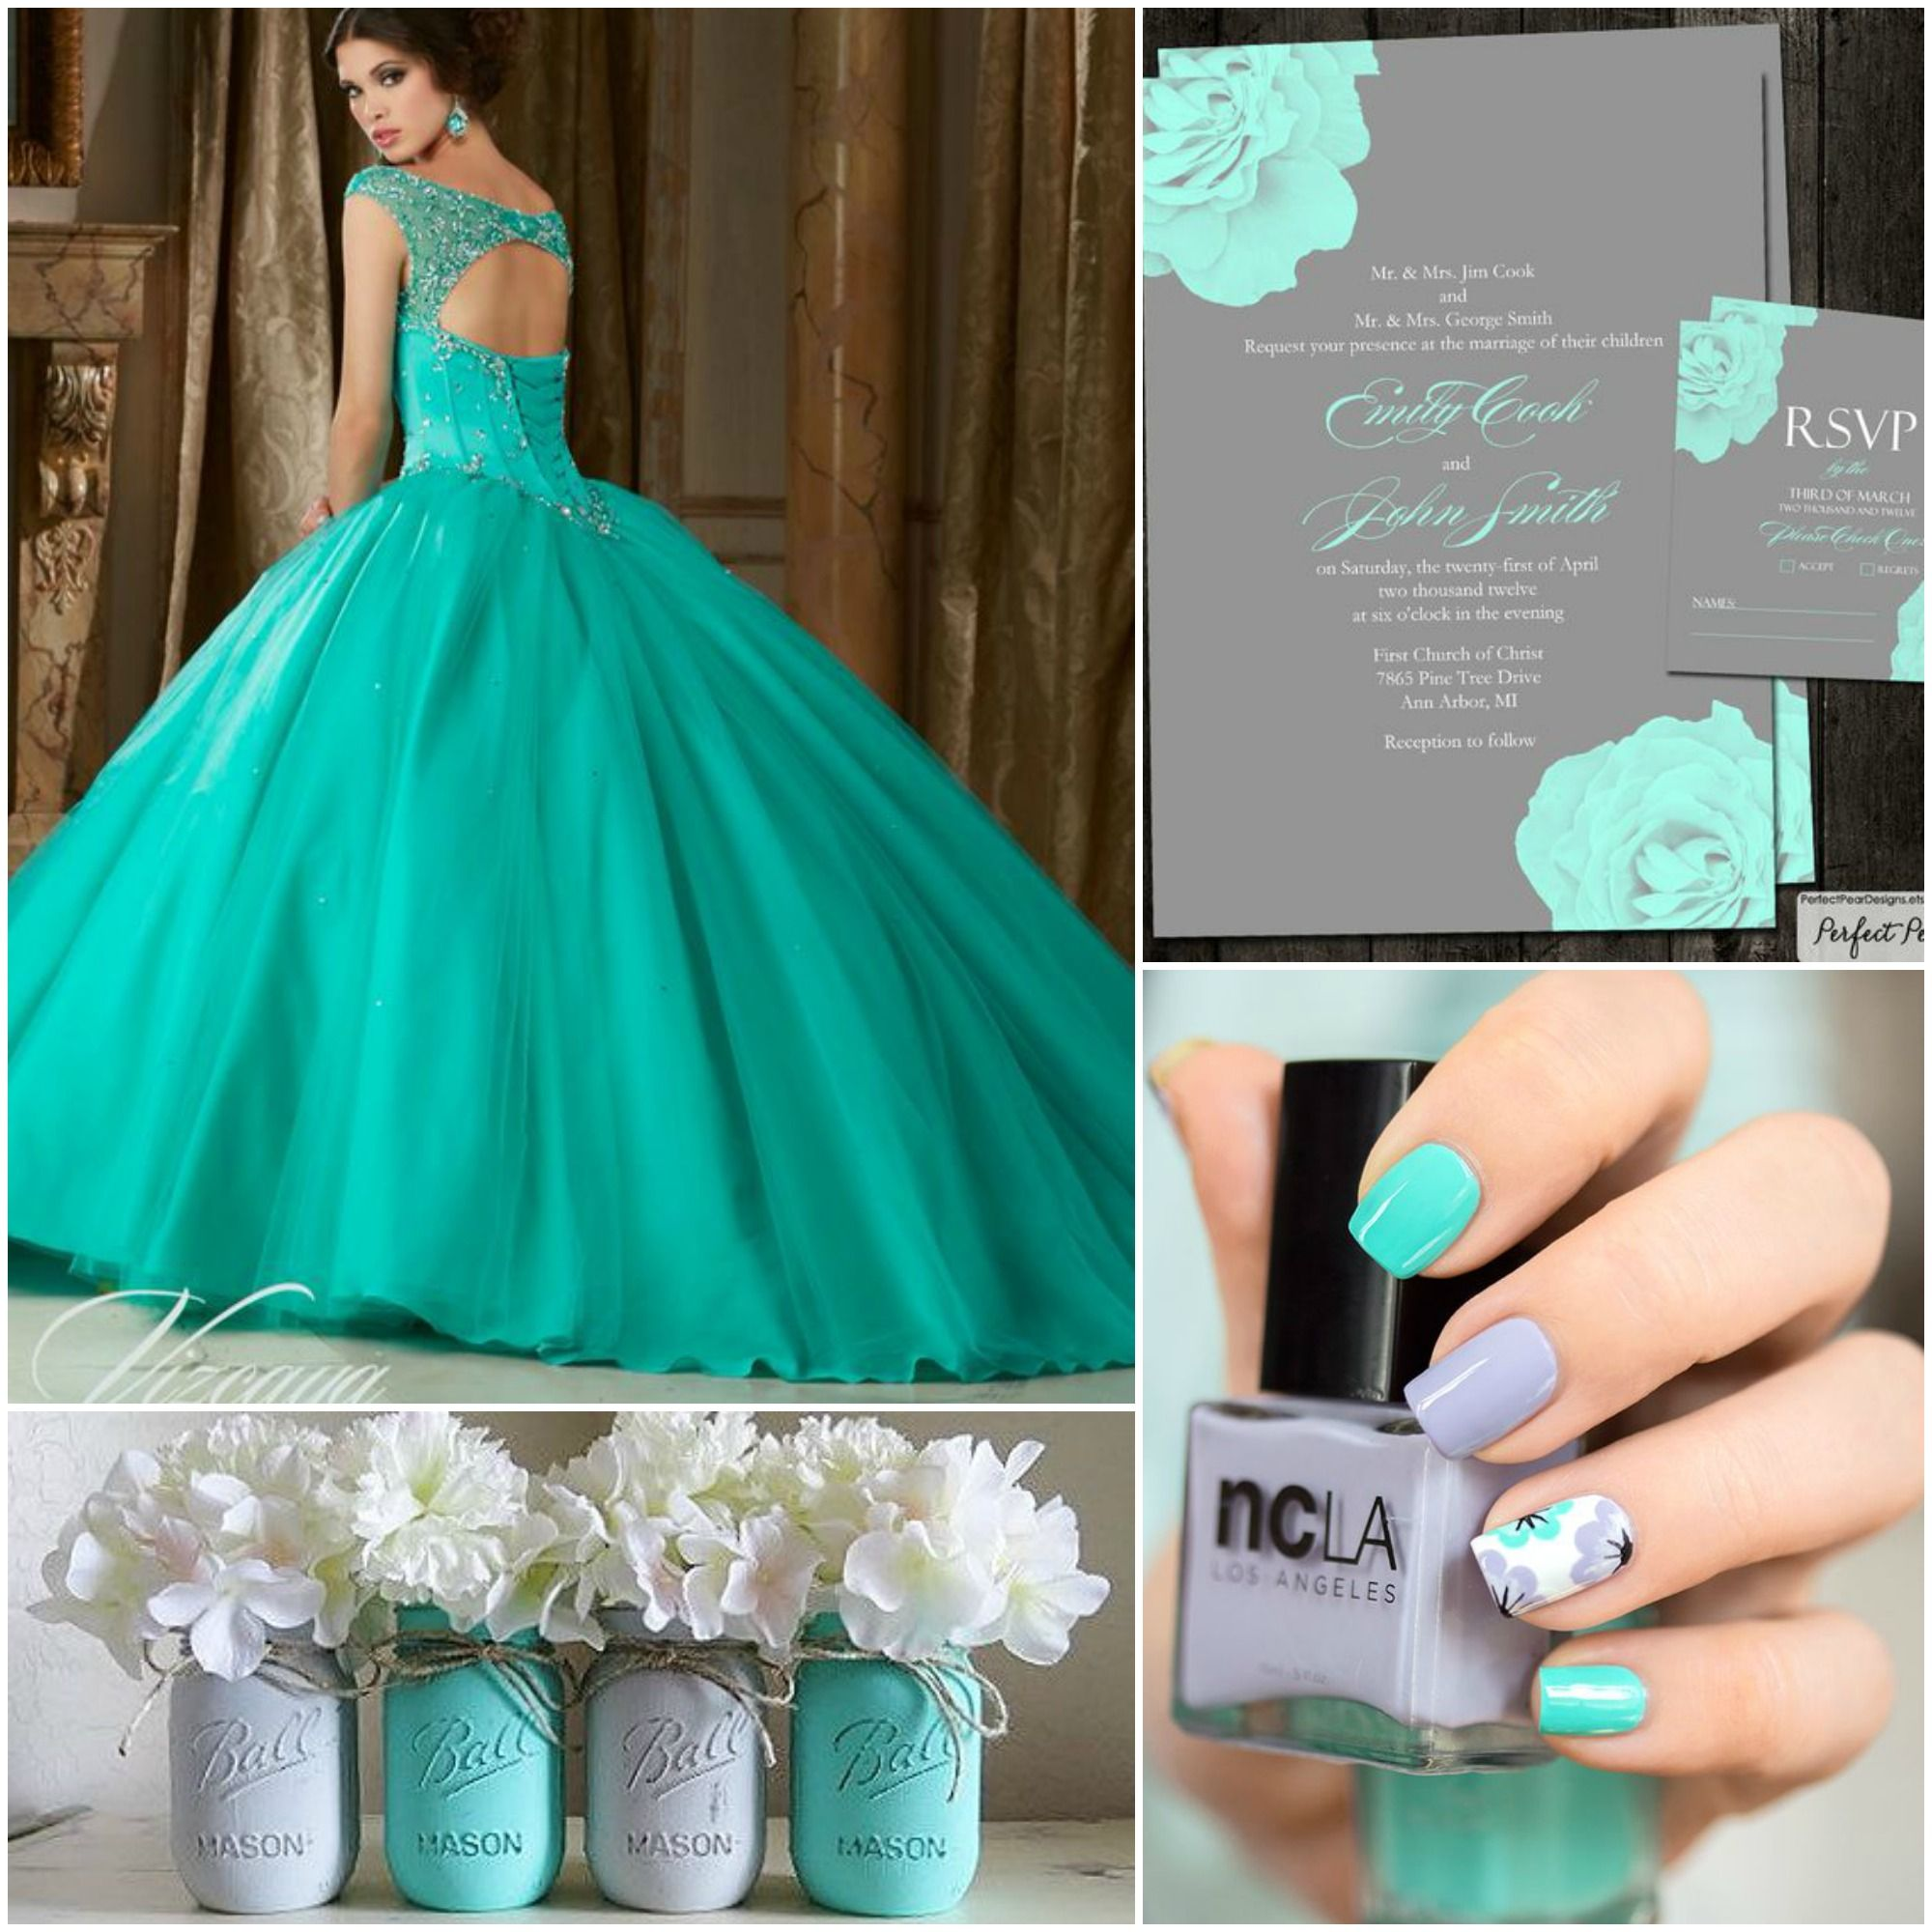 c7bb304e30b Quinceanera Teal and Grey Theme Ideas